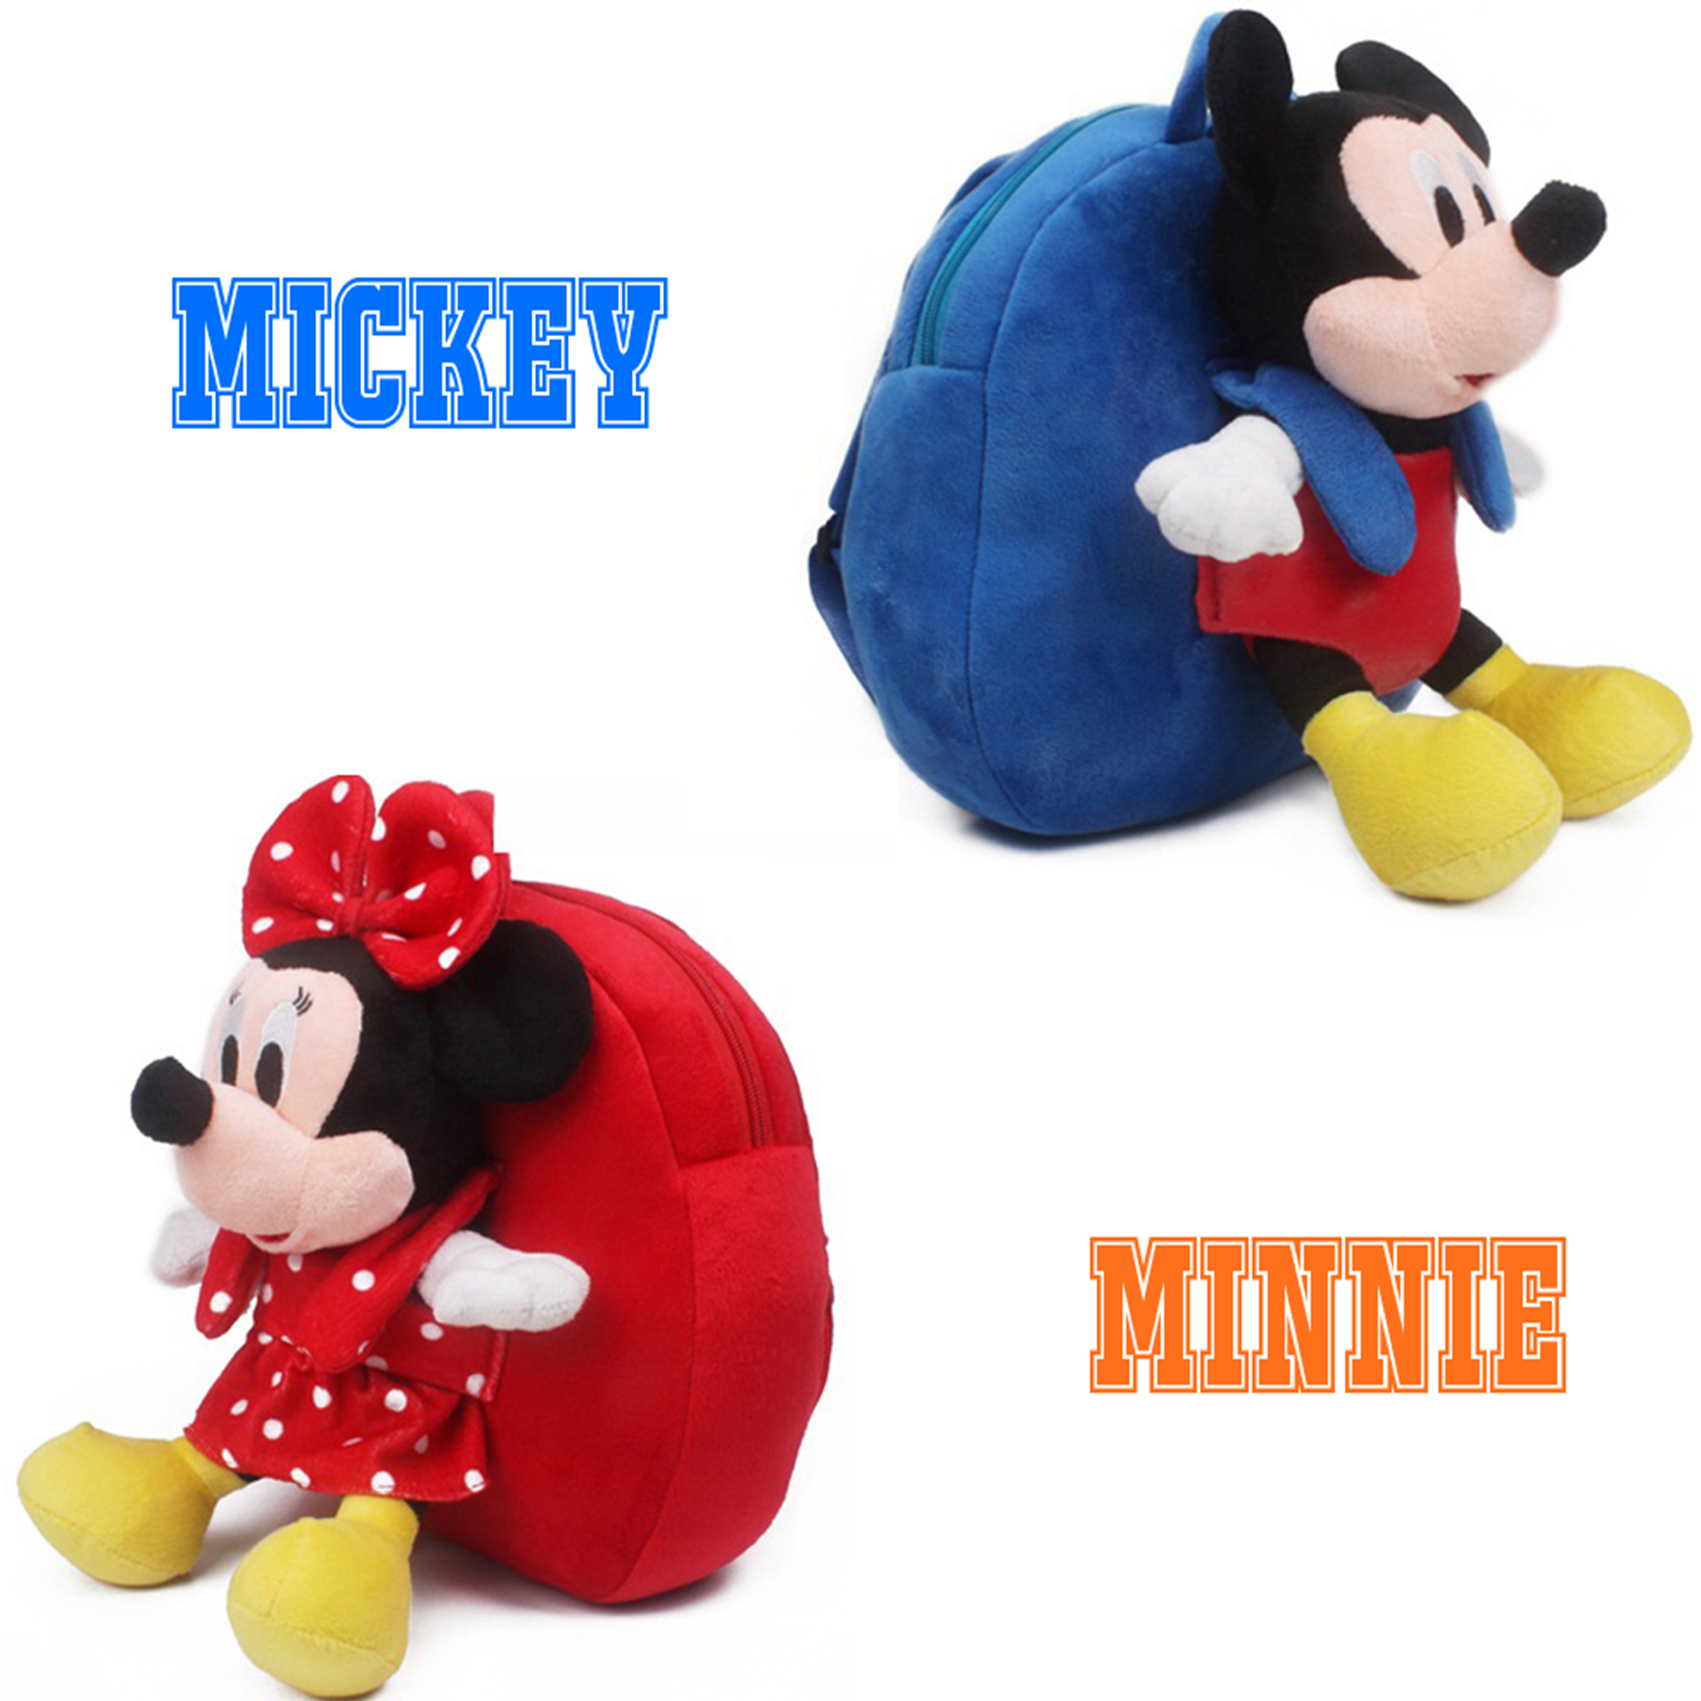 2017 New Middle Size Mickey Minnie Schoolbag Backpack Children Mochila Bags Kids Plush Backpack for Birthday Christmas Gift